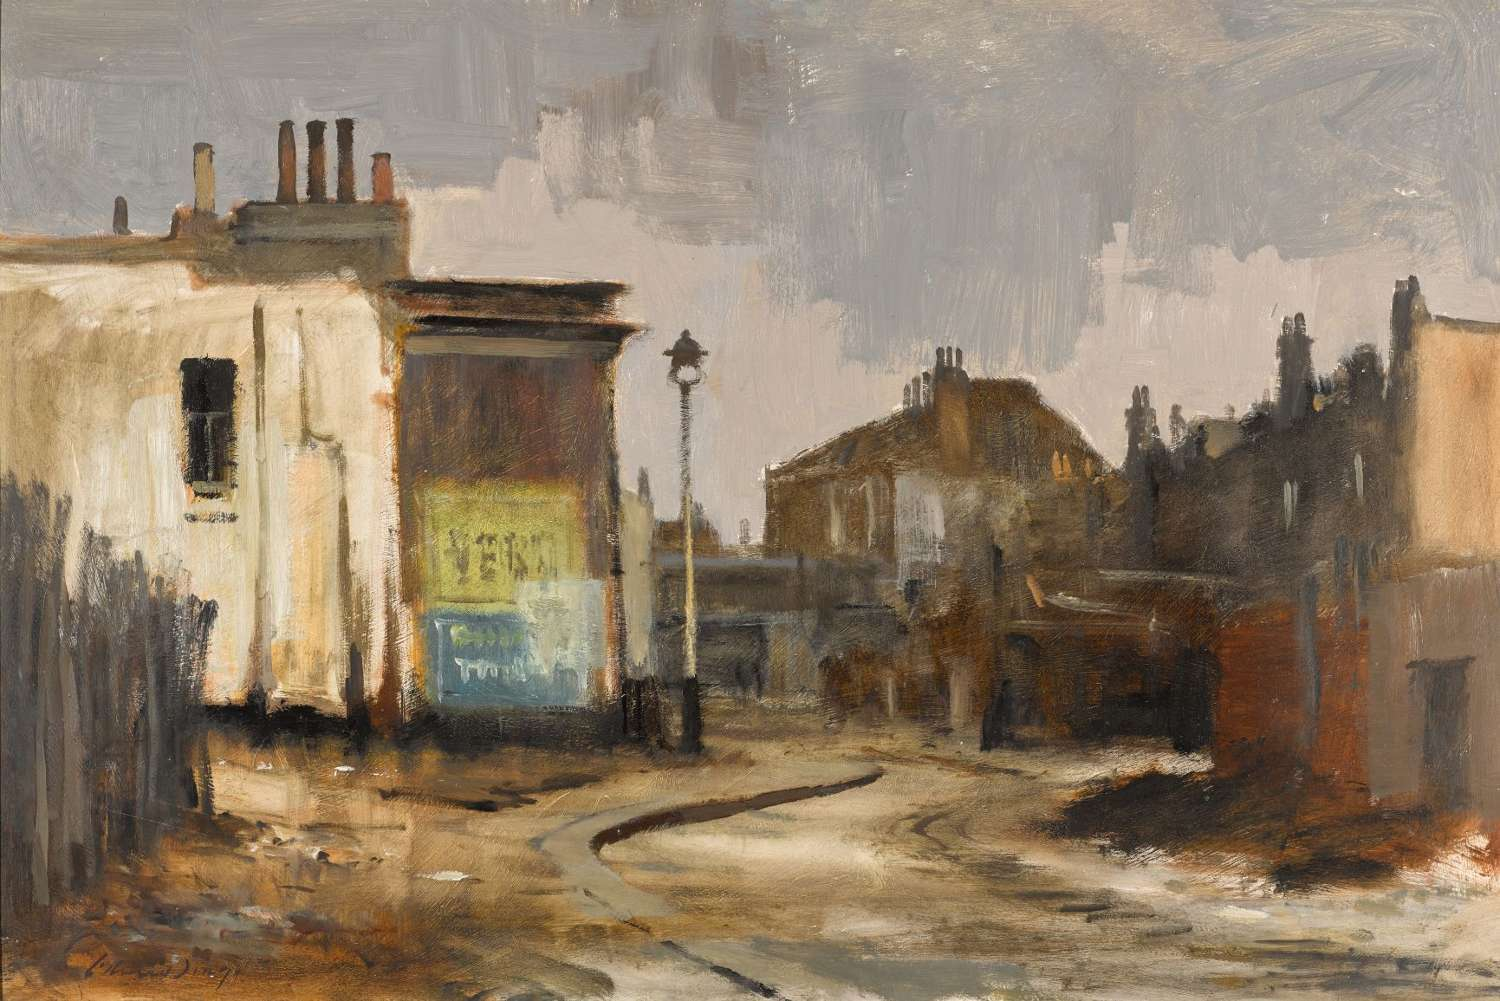 Edward Brian Seago (British 1910-1974) Oil on canvas